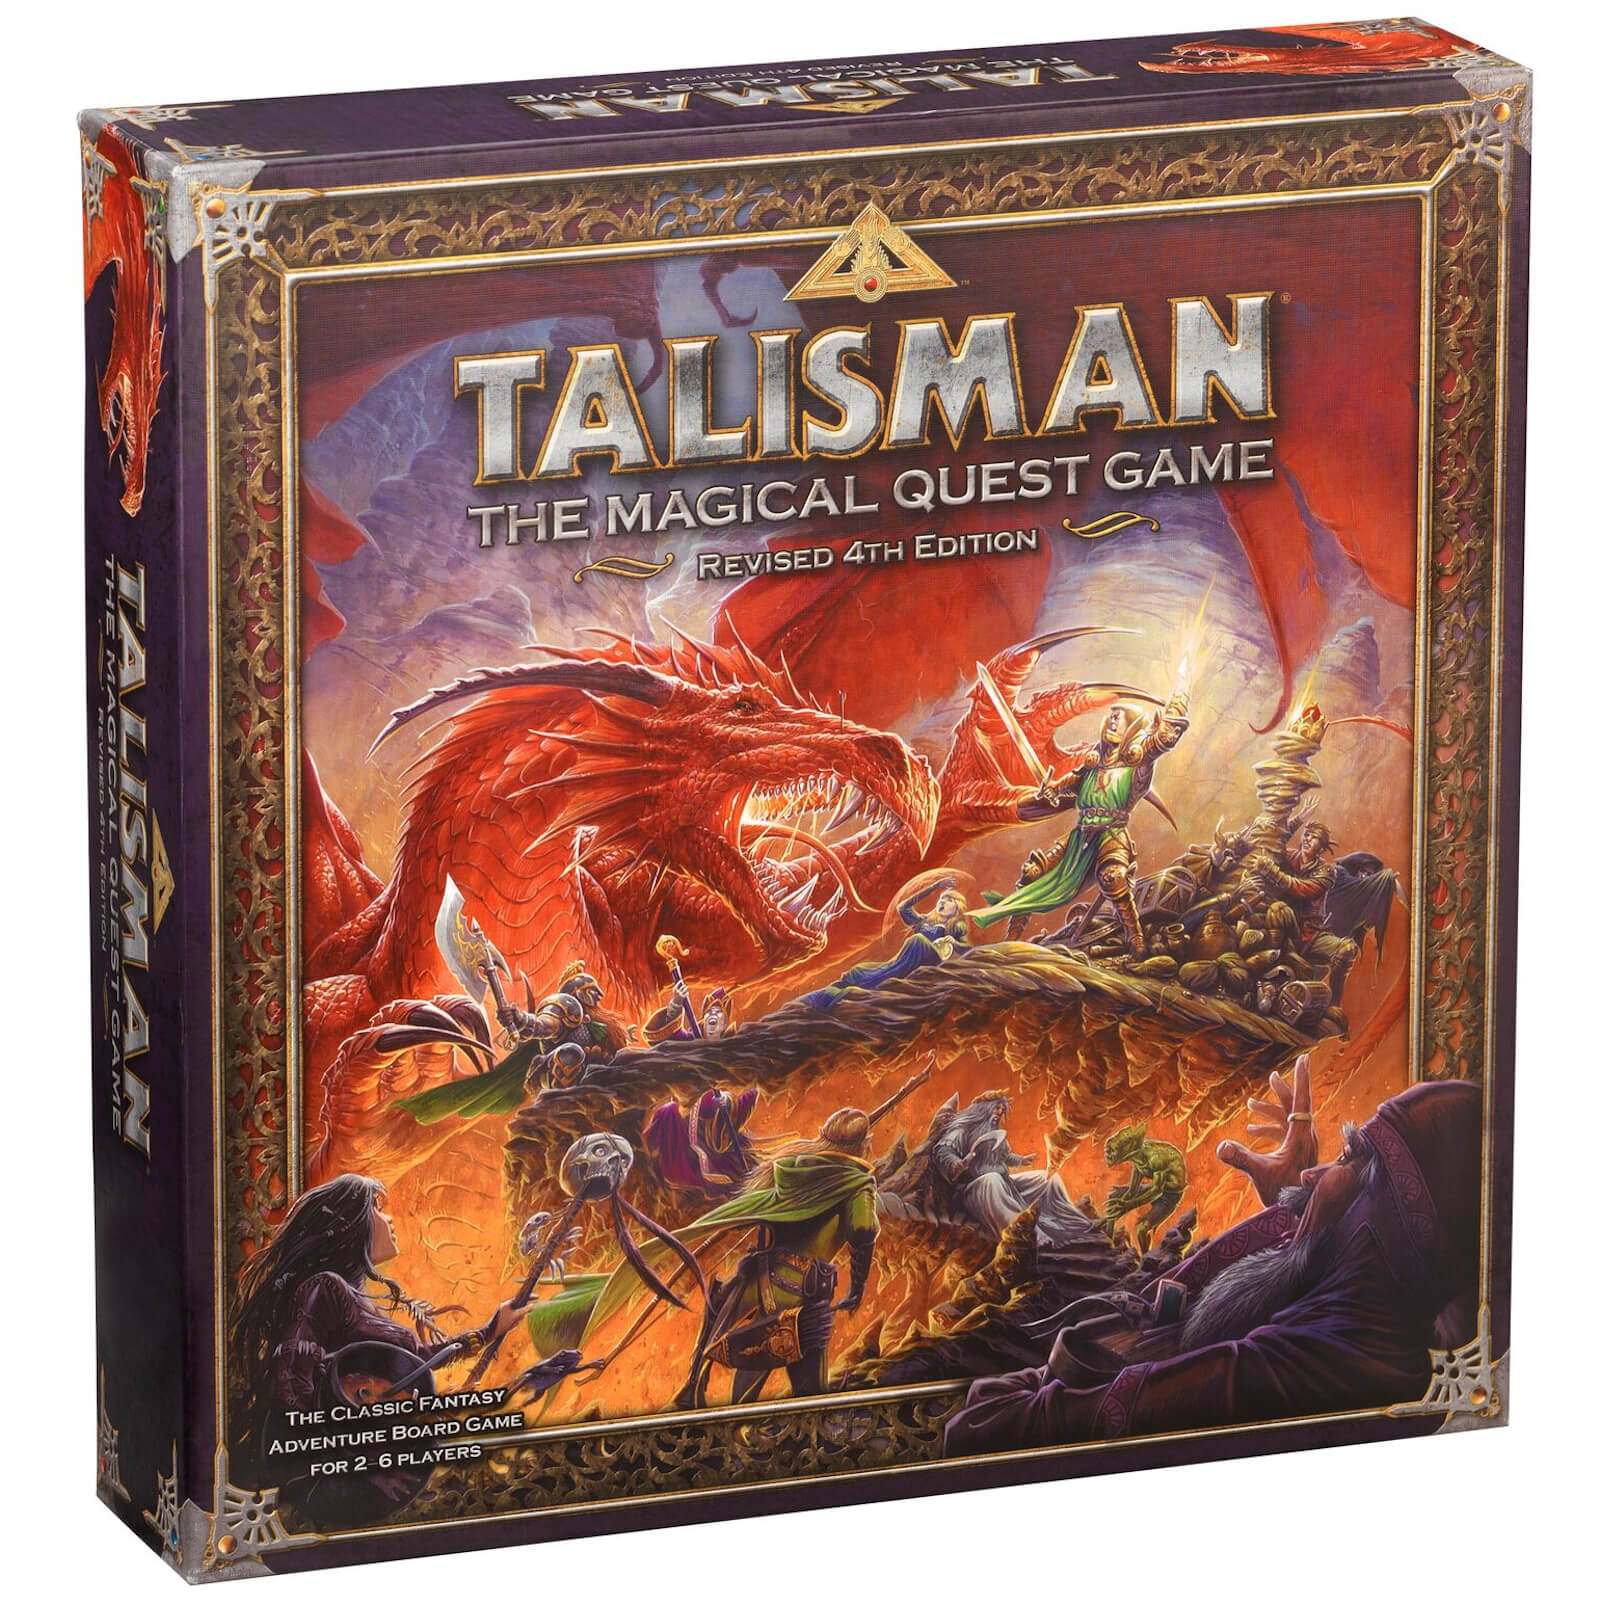 Image of Talisman (Revised 4th Edition) Board Game